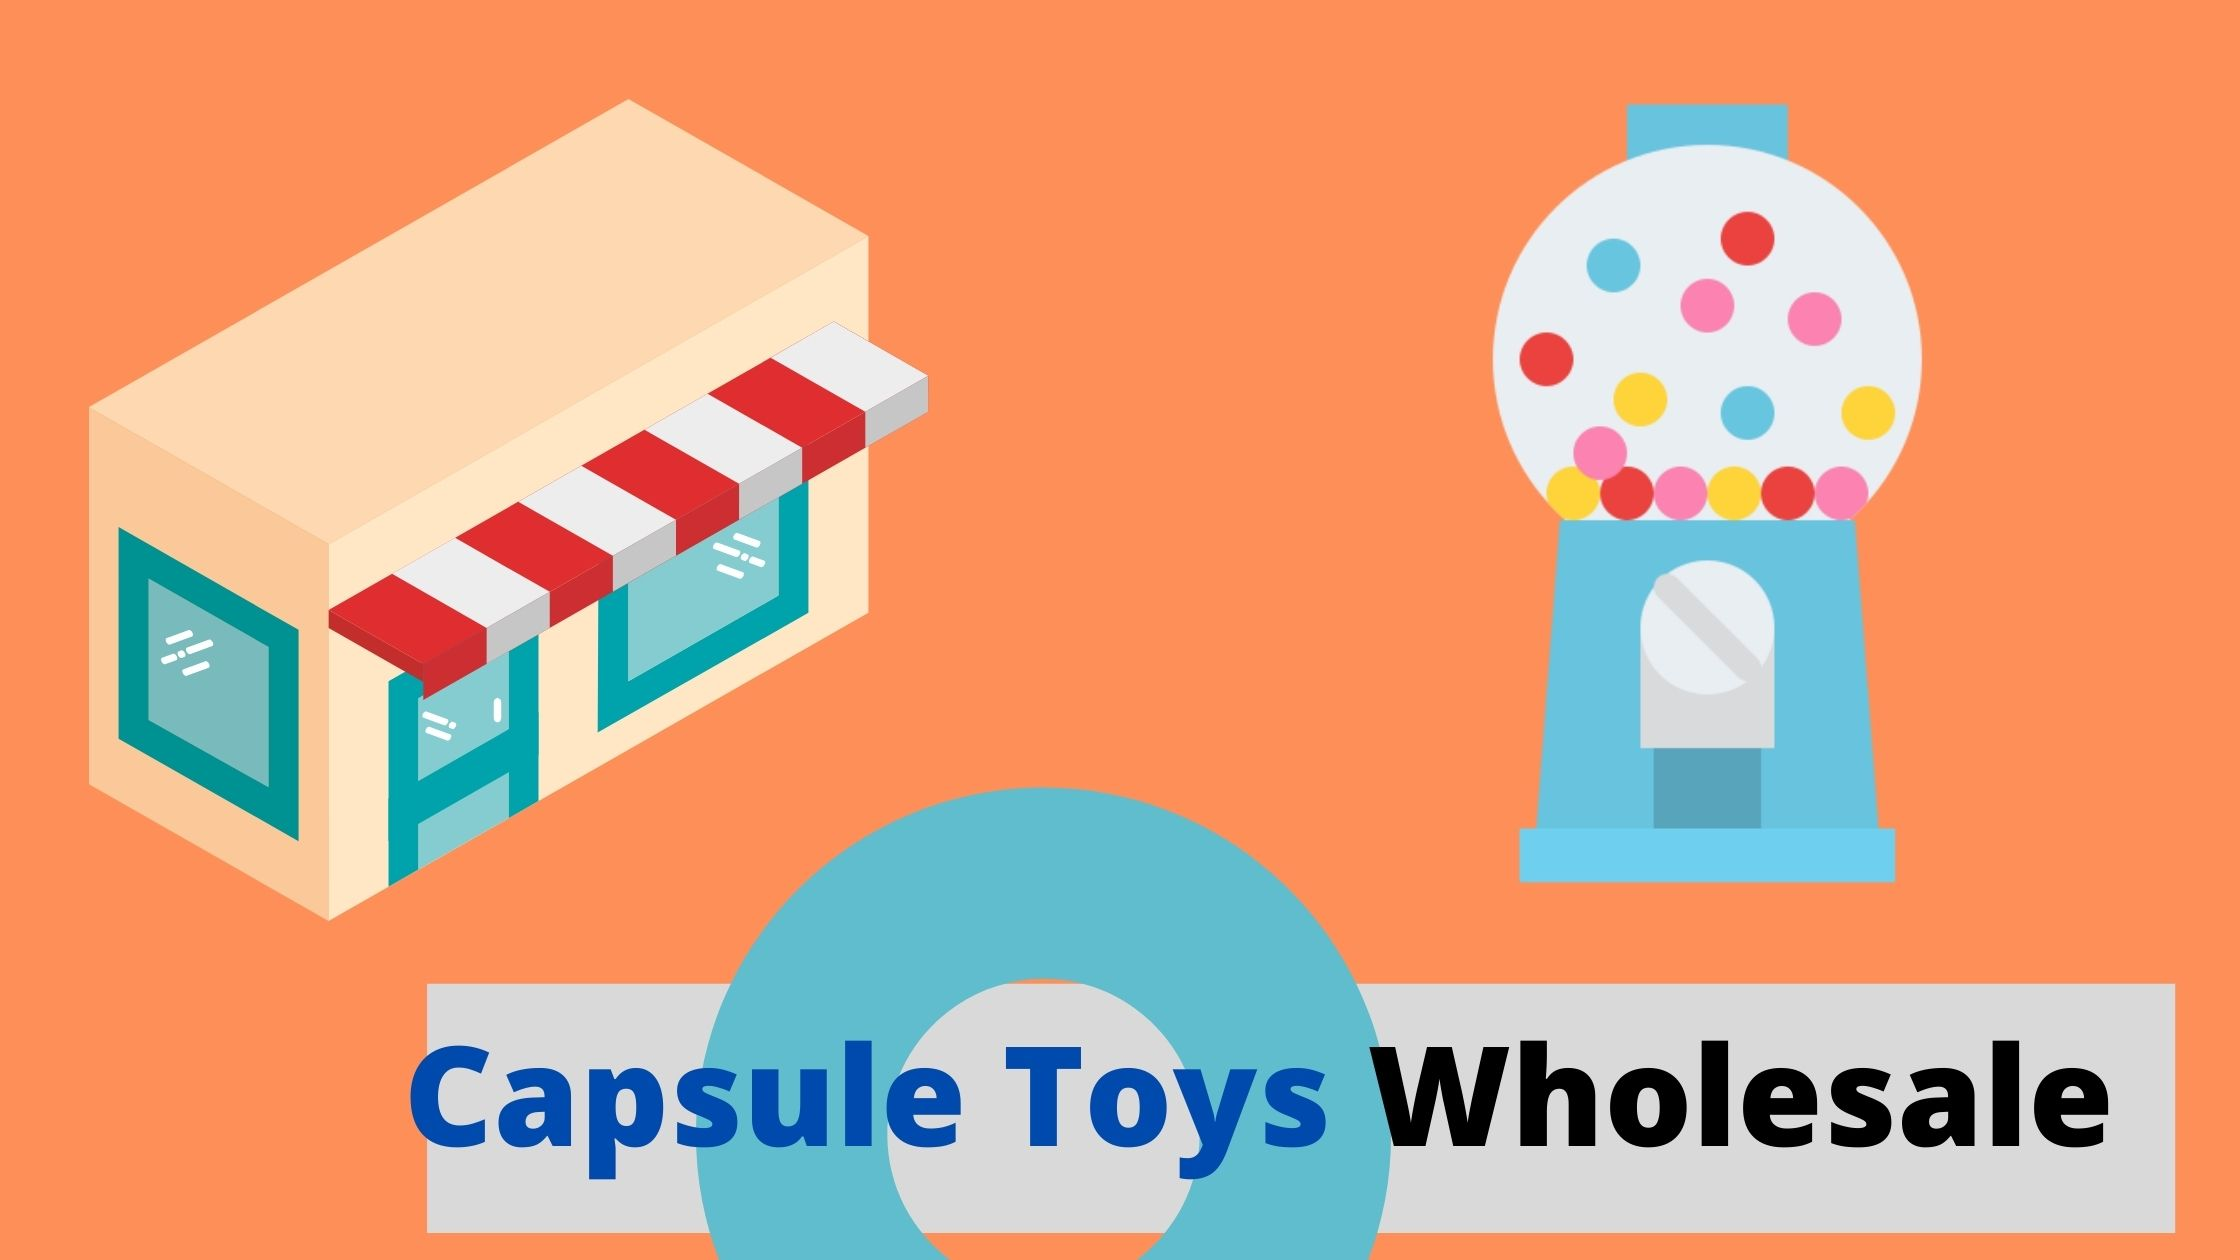 Where to get the Best Capsule Toys Wholesale